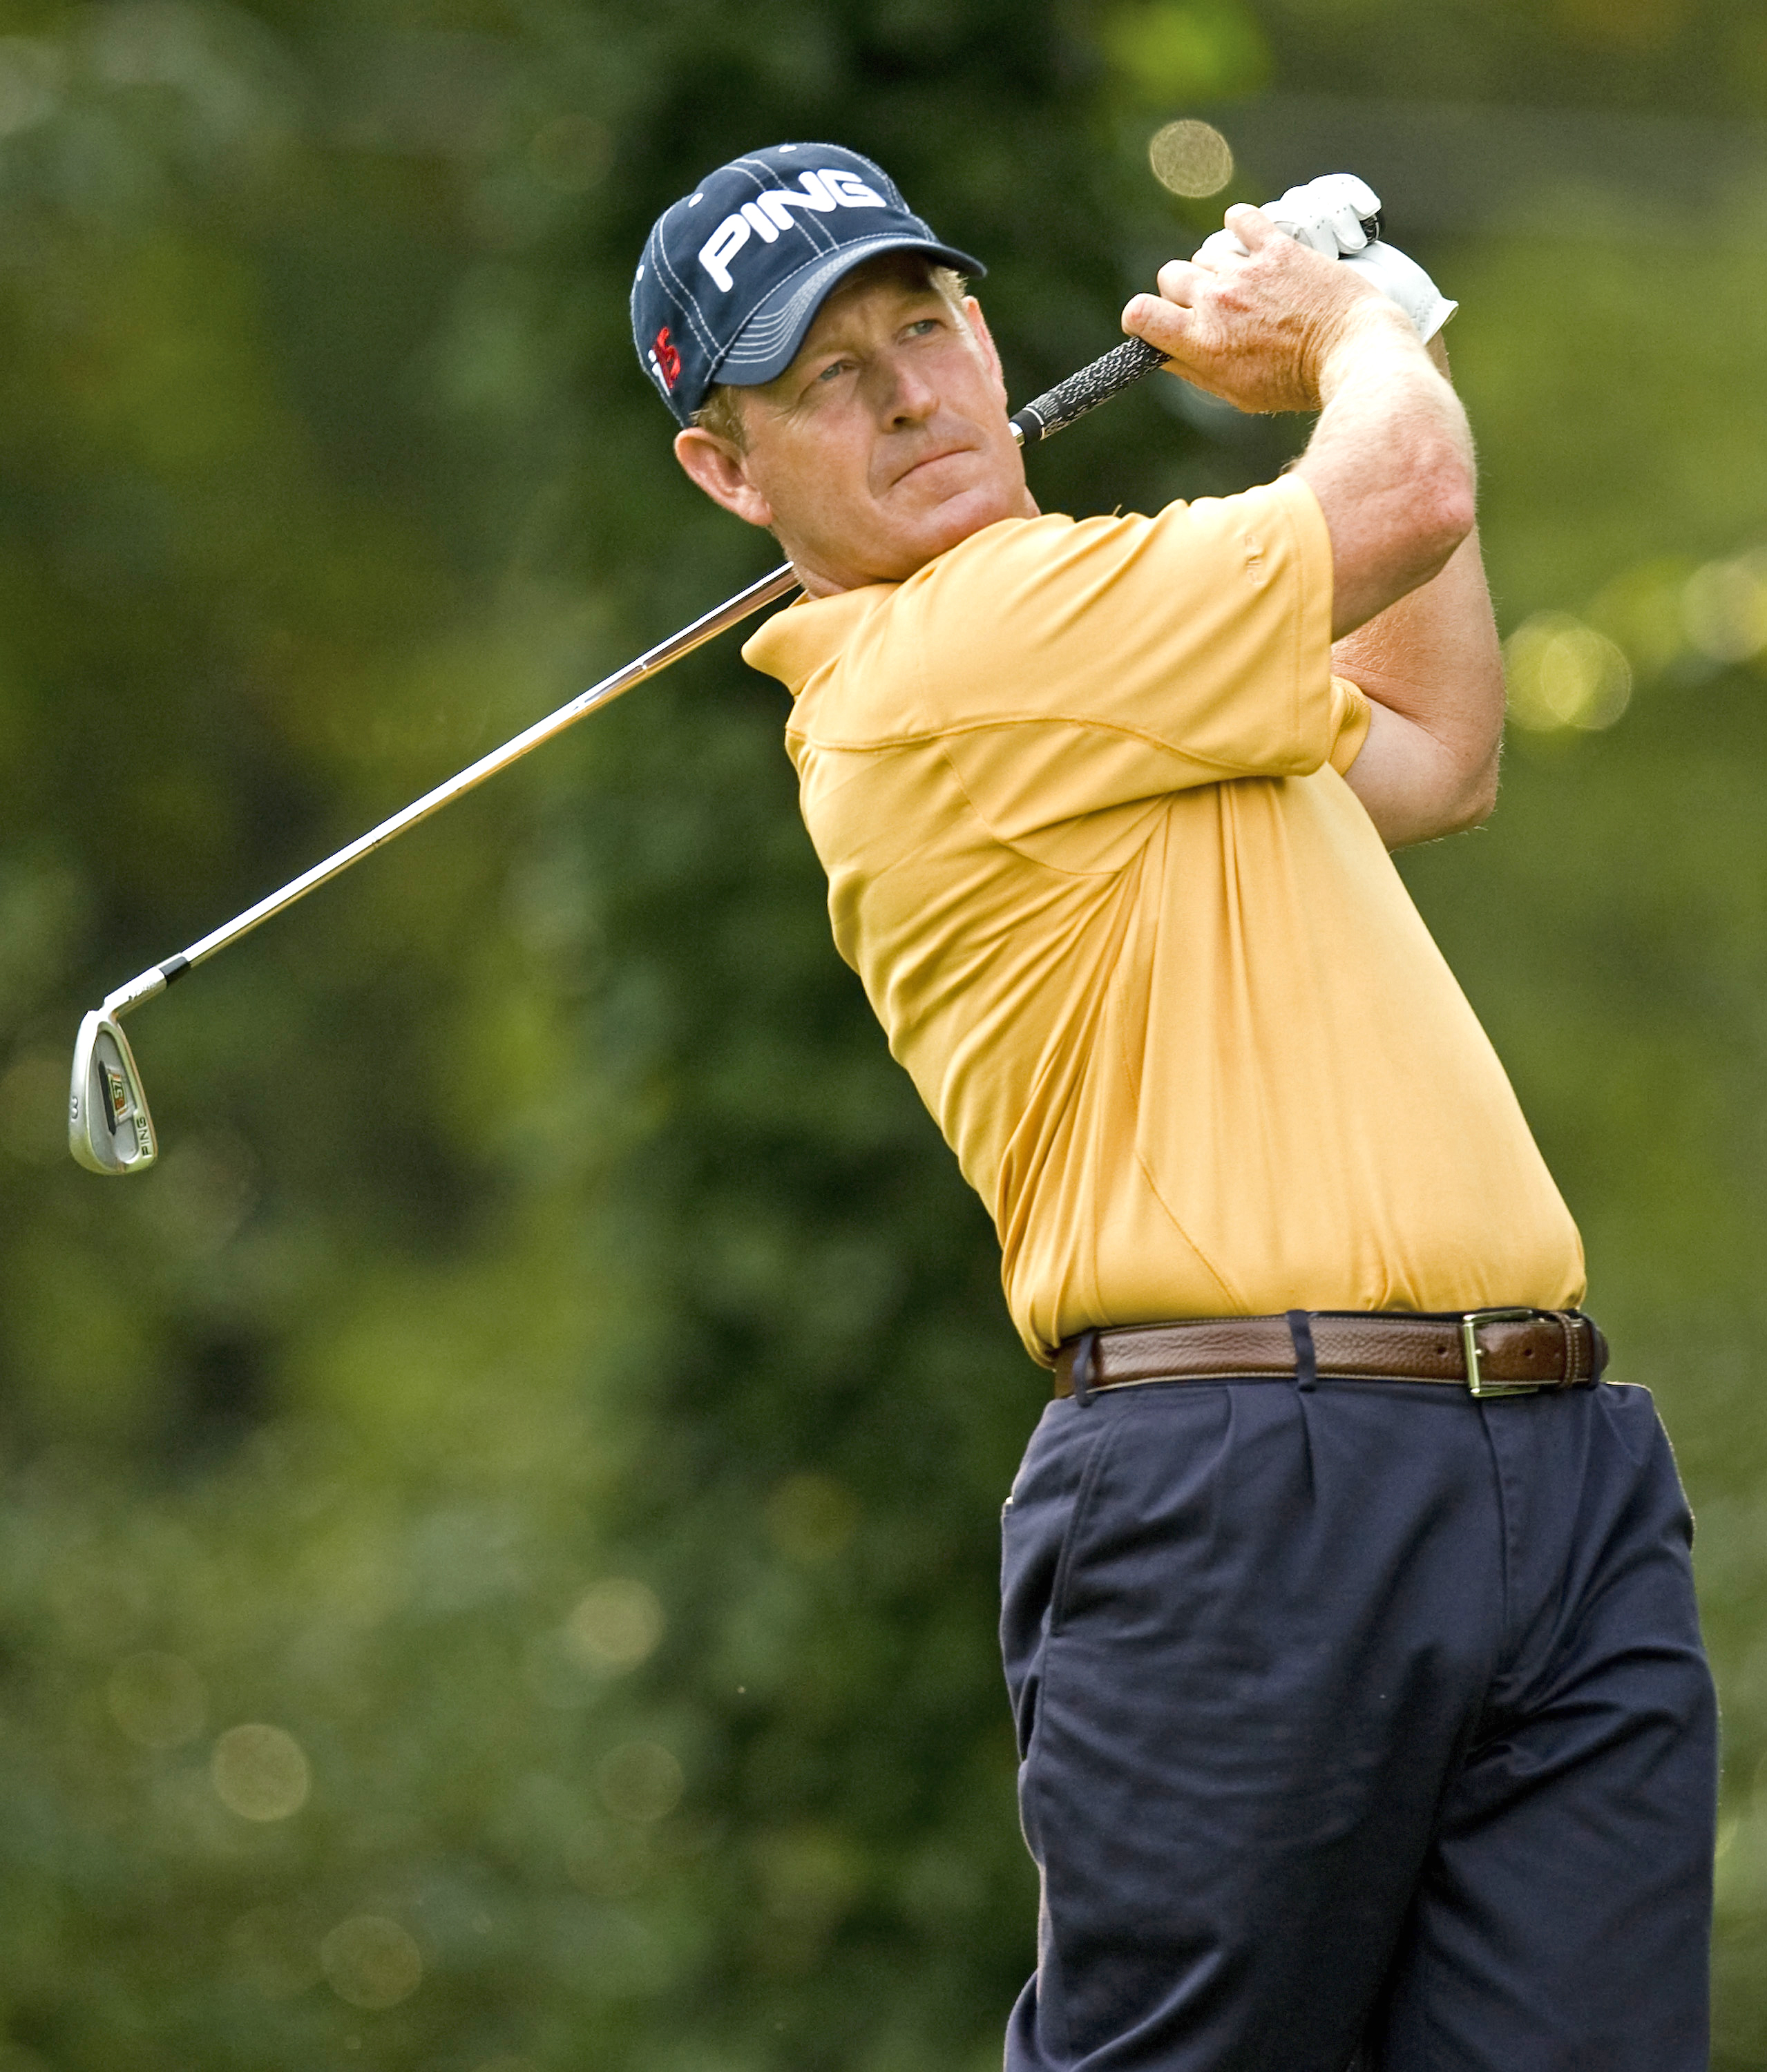 Jeff Maggert shot 67 Friday and is tied for third place.